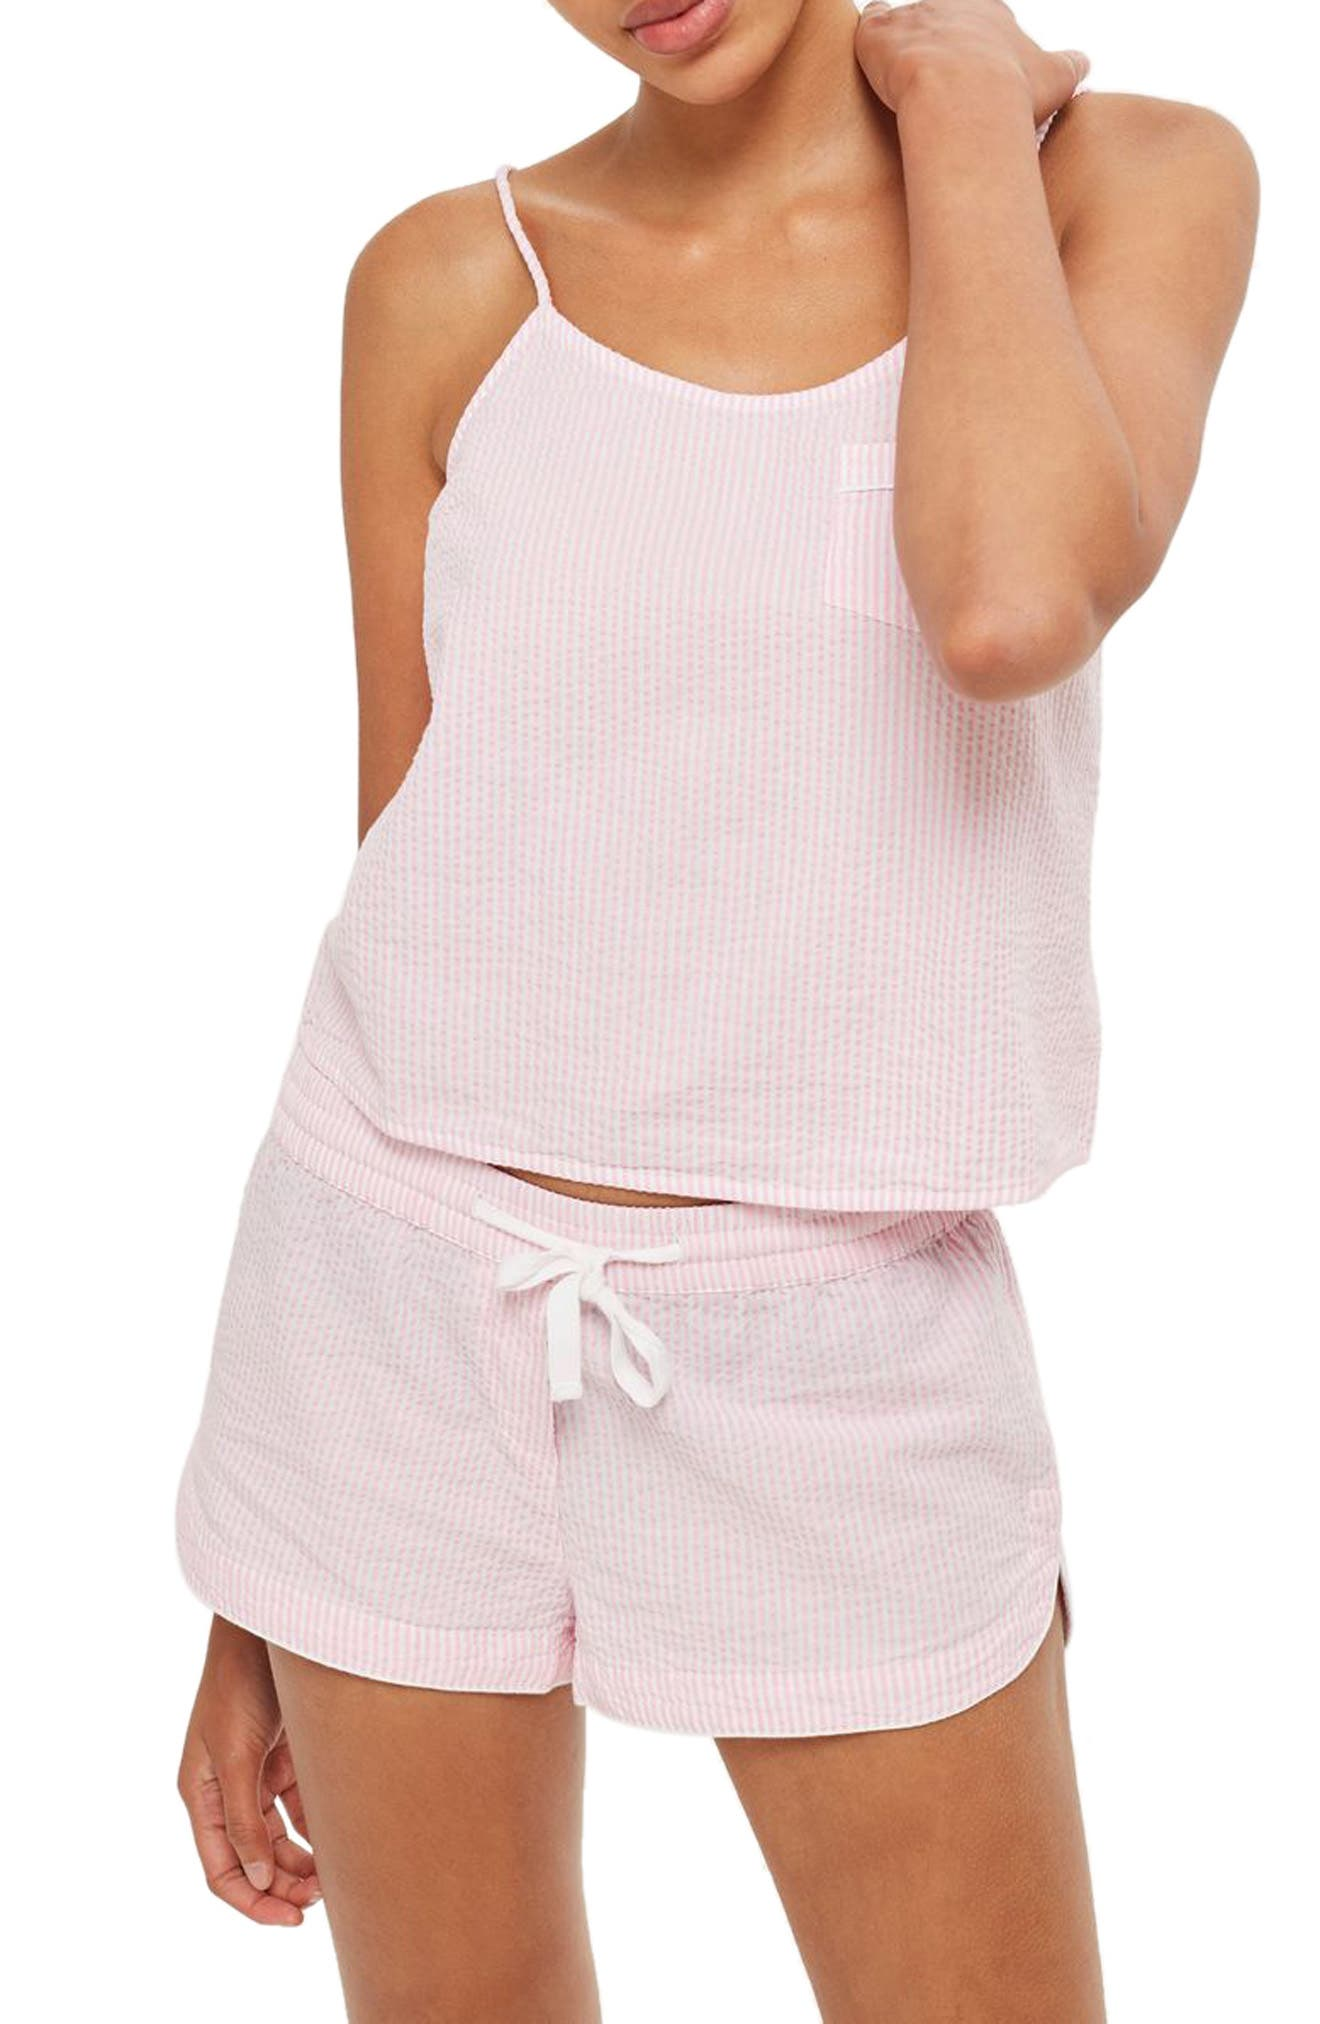 Seersucker Short Pajamas,                             Main thumbnail 1, color,                             Light Pink Multi